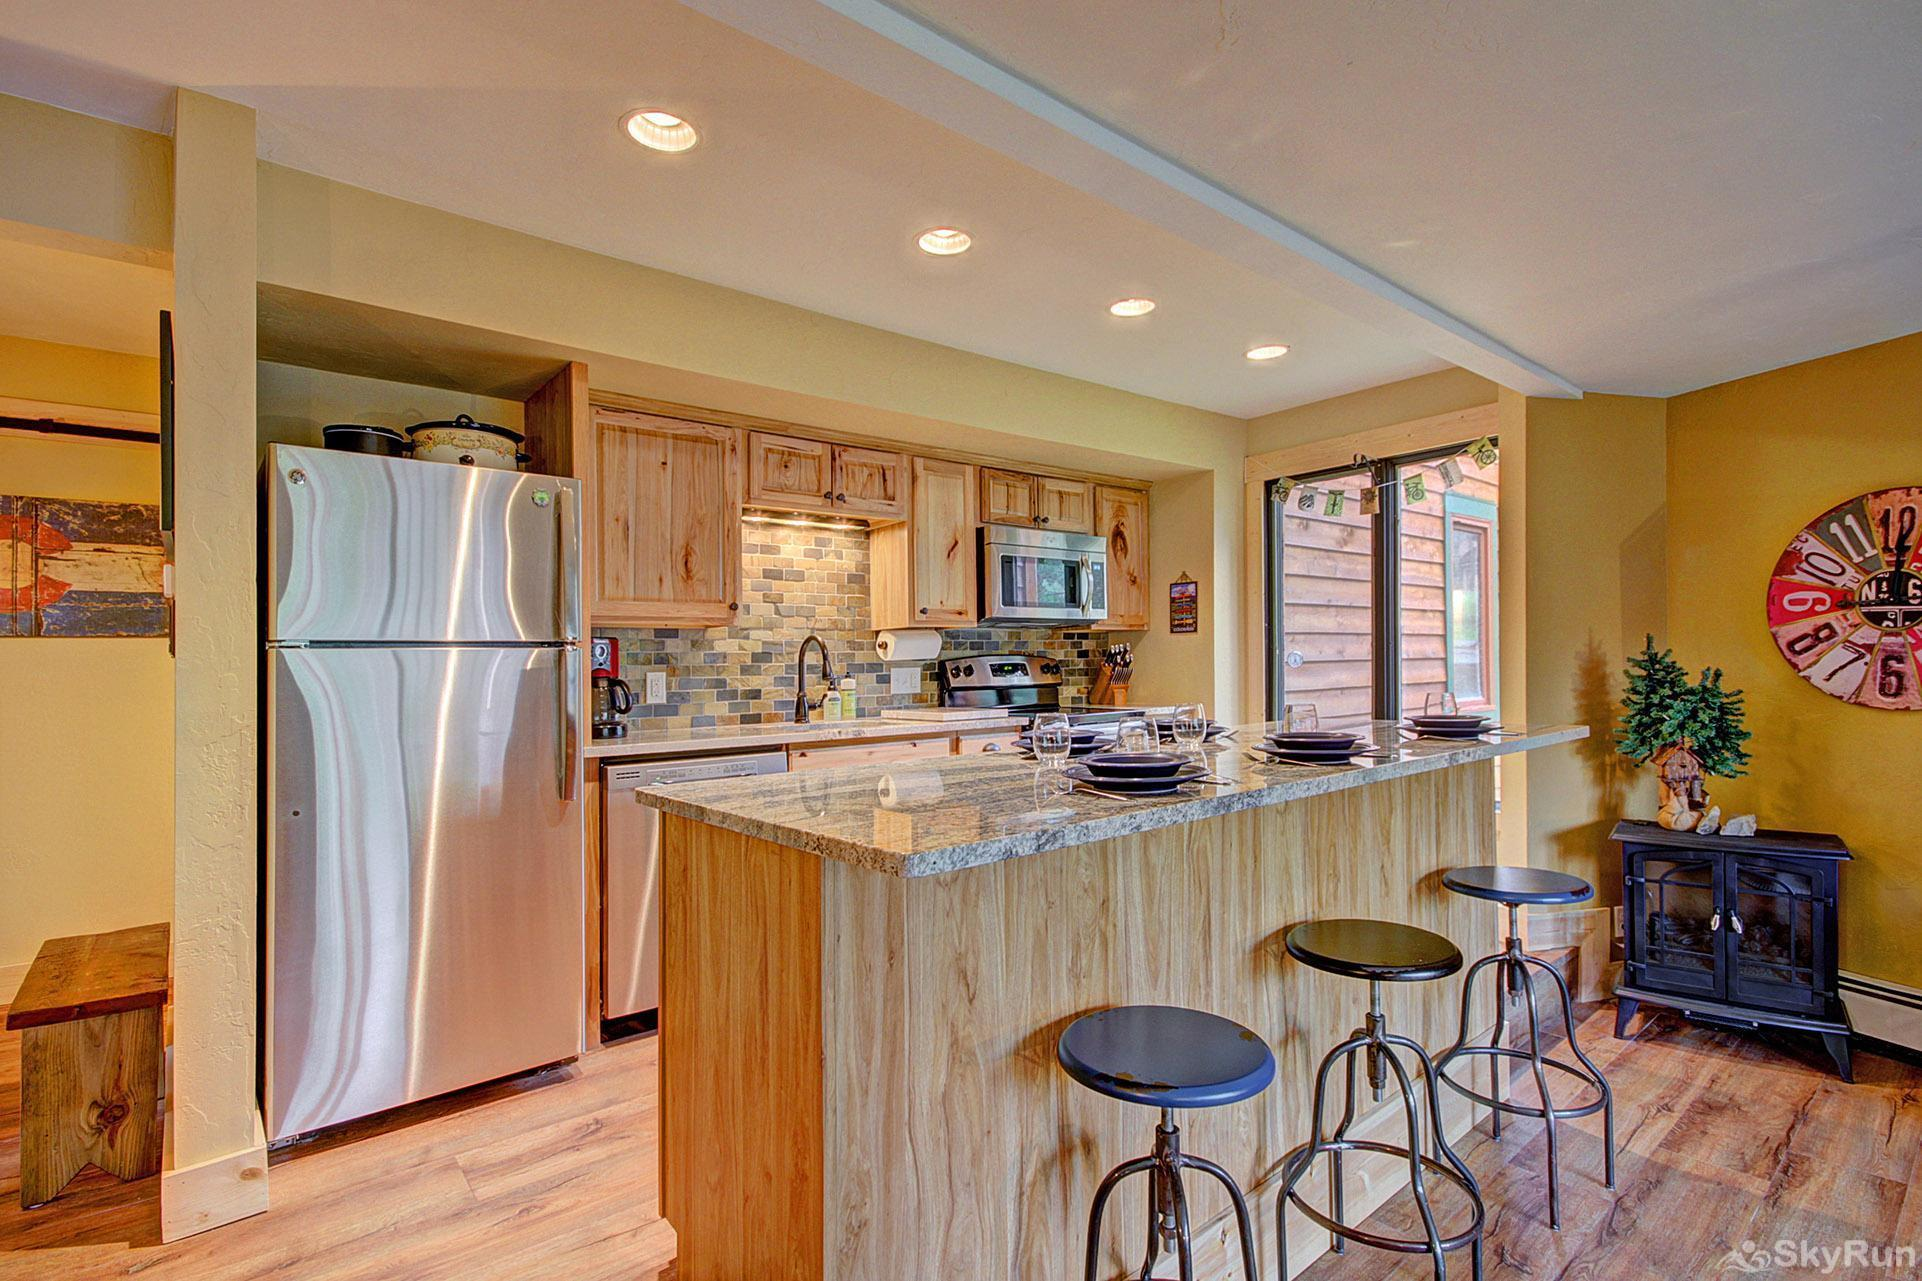 Peak 8 Village D24 Kitchen with stainless steel appliances